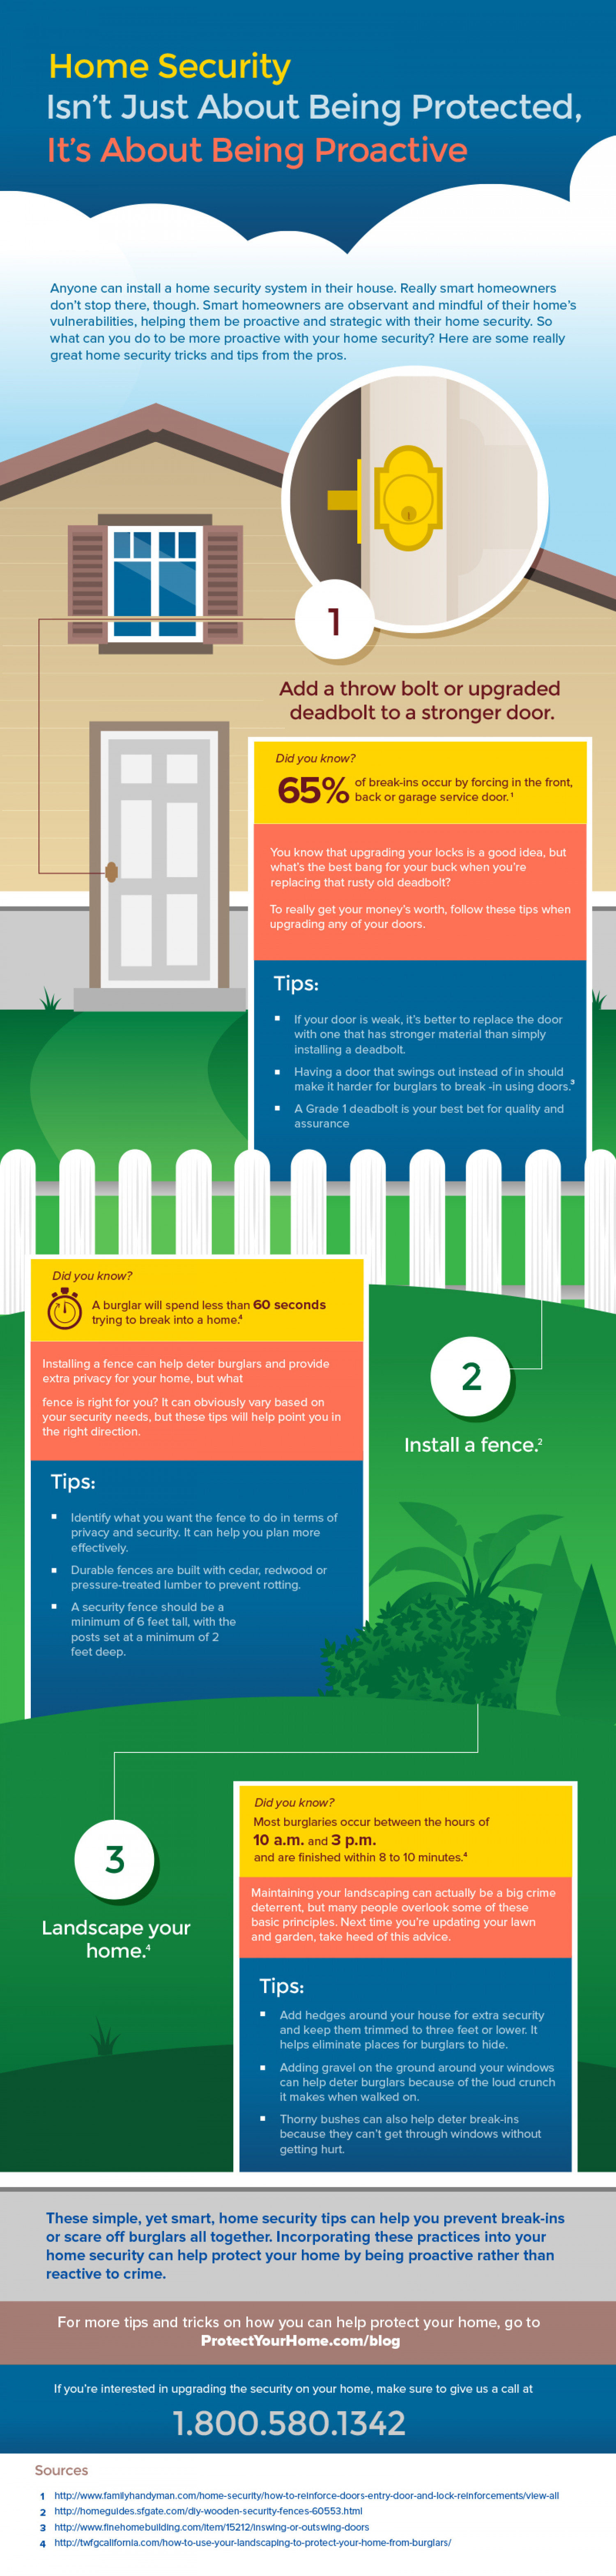 Home Security Isn't Just About Being Protected, It's About Being Proactive Infographic